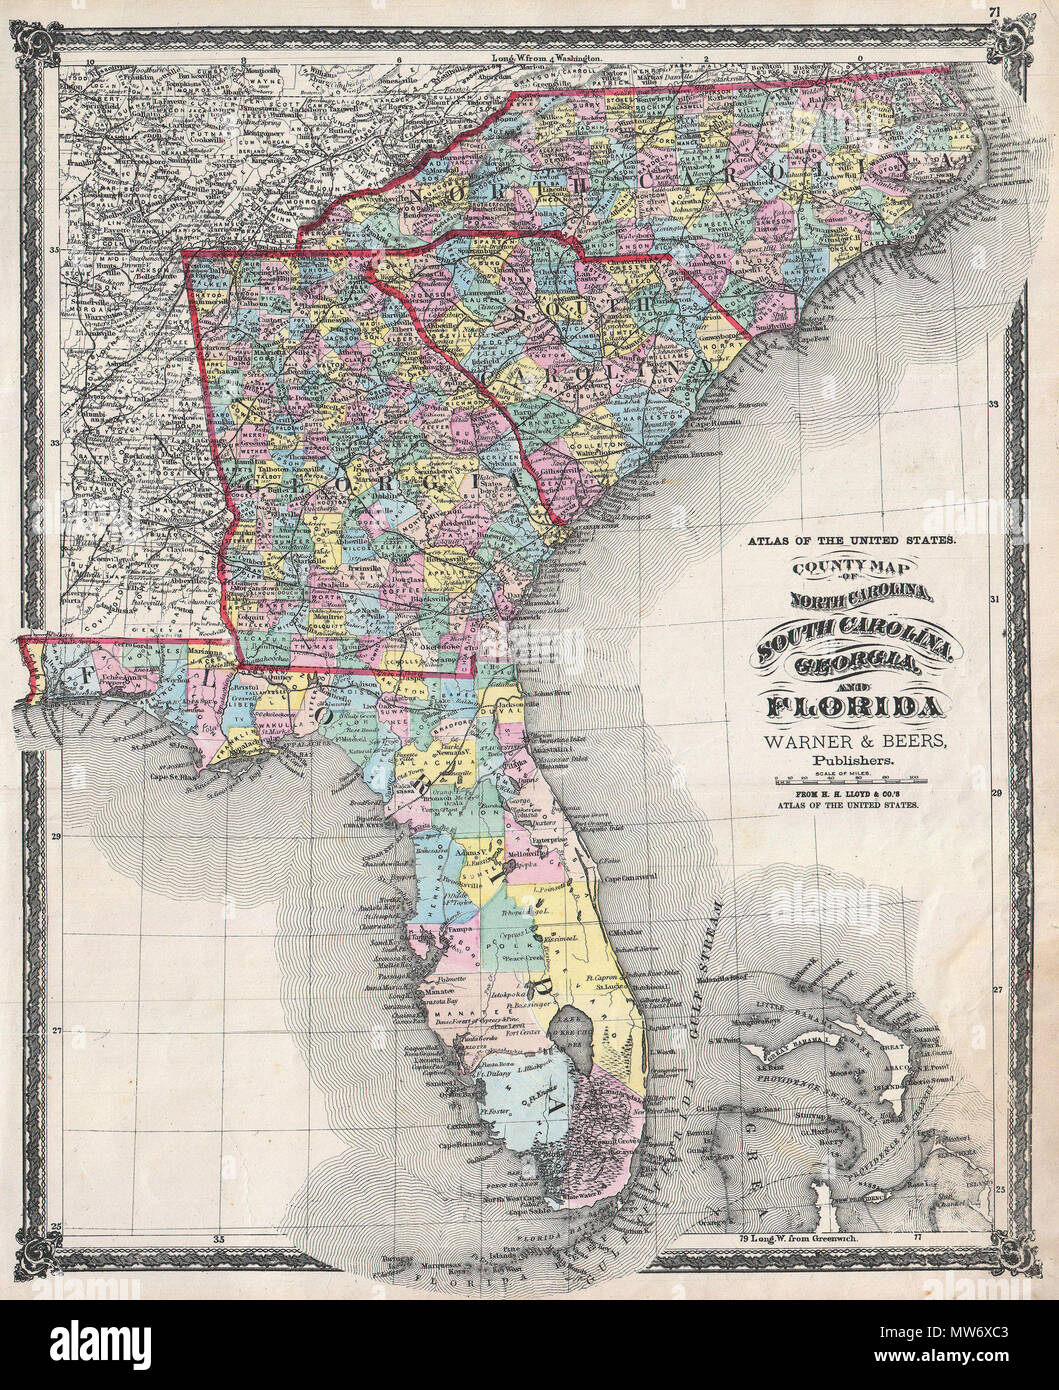 Georgia And Florida Map.County Map Of North Carolina South Carolina Georgia And Florida